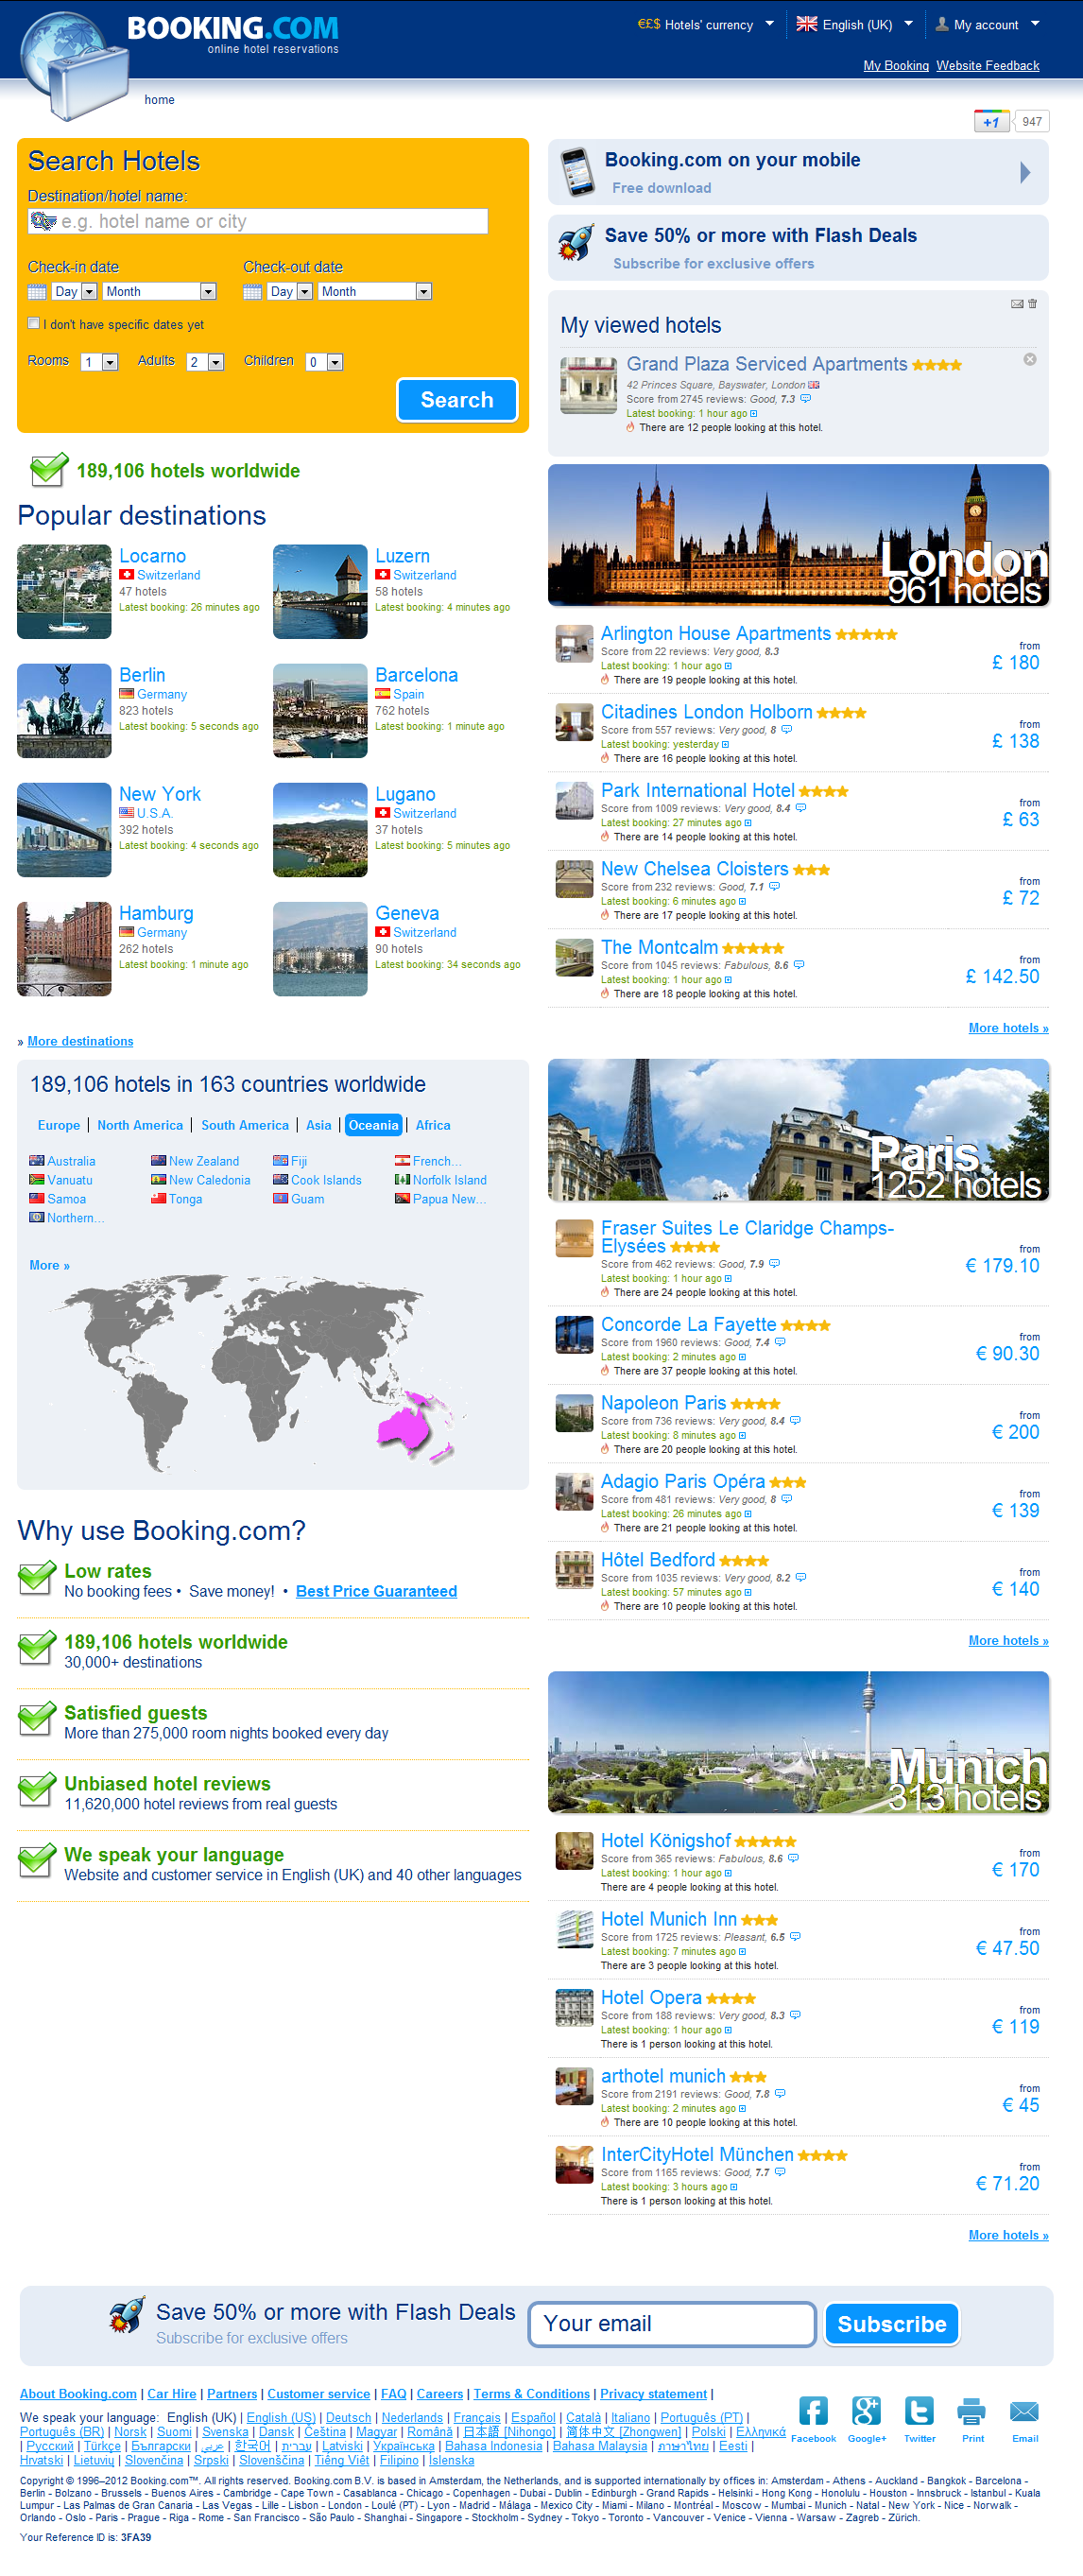 Booking.com: 189,106 hotels worldwide. Book your hotel now!